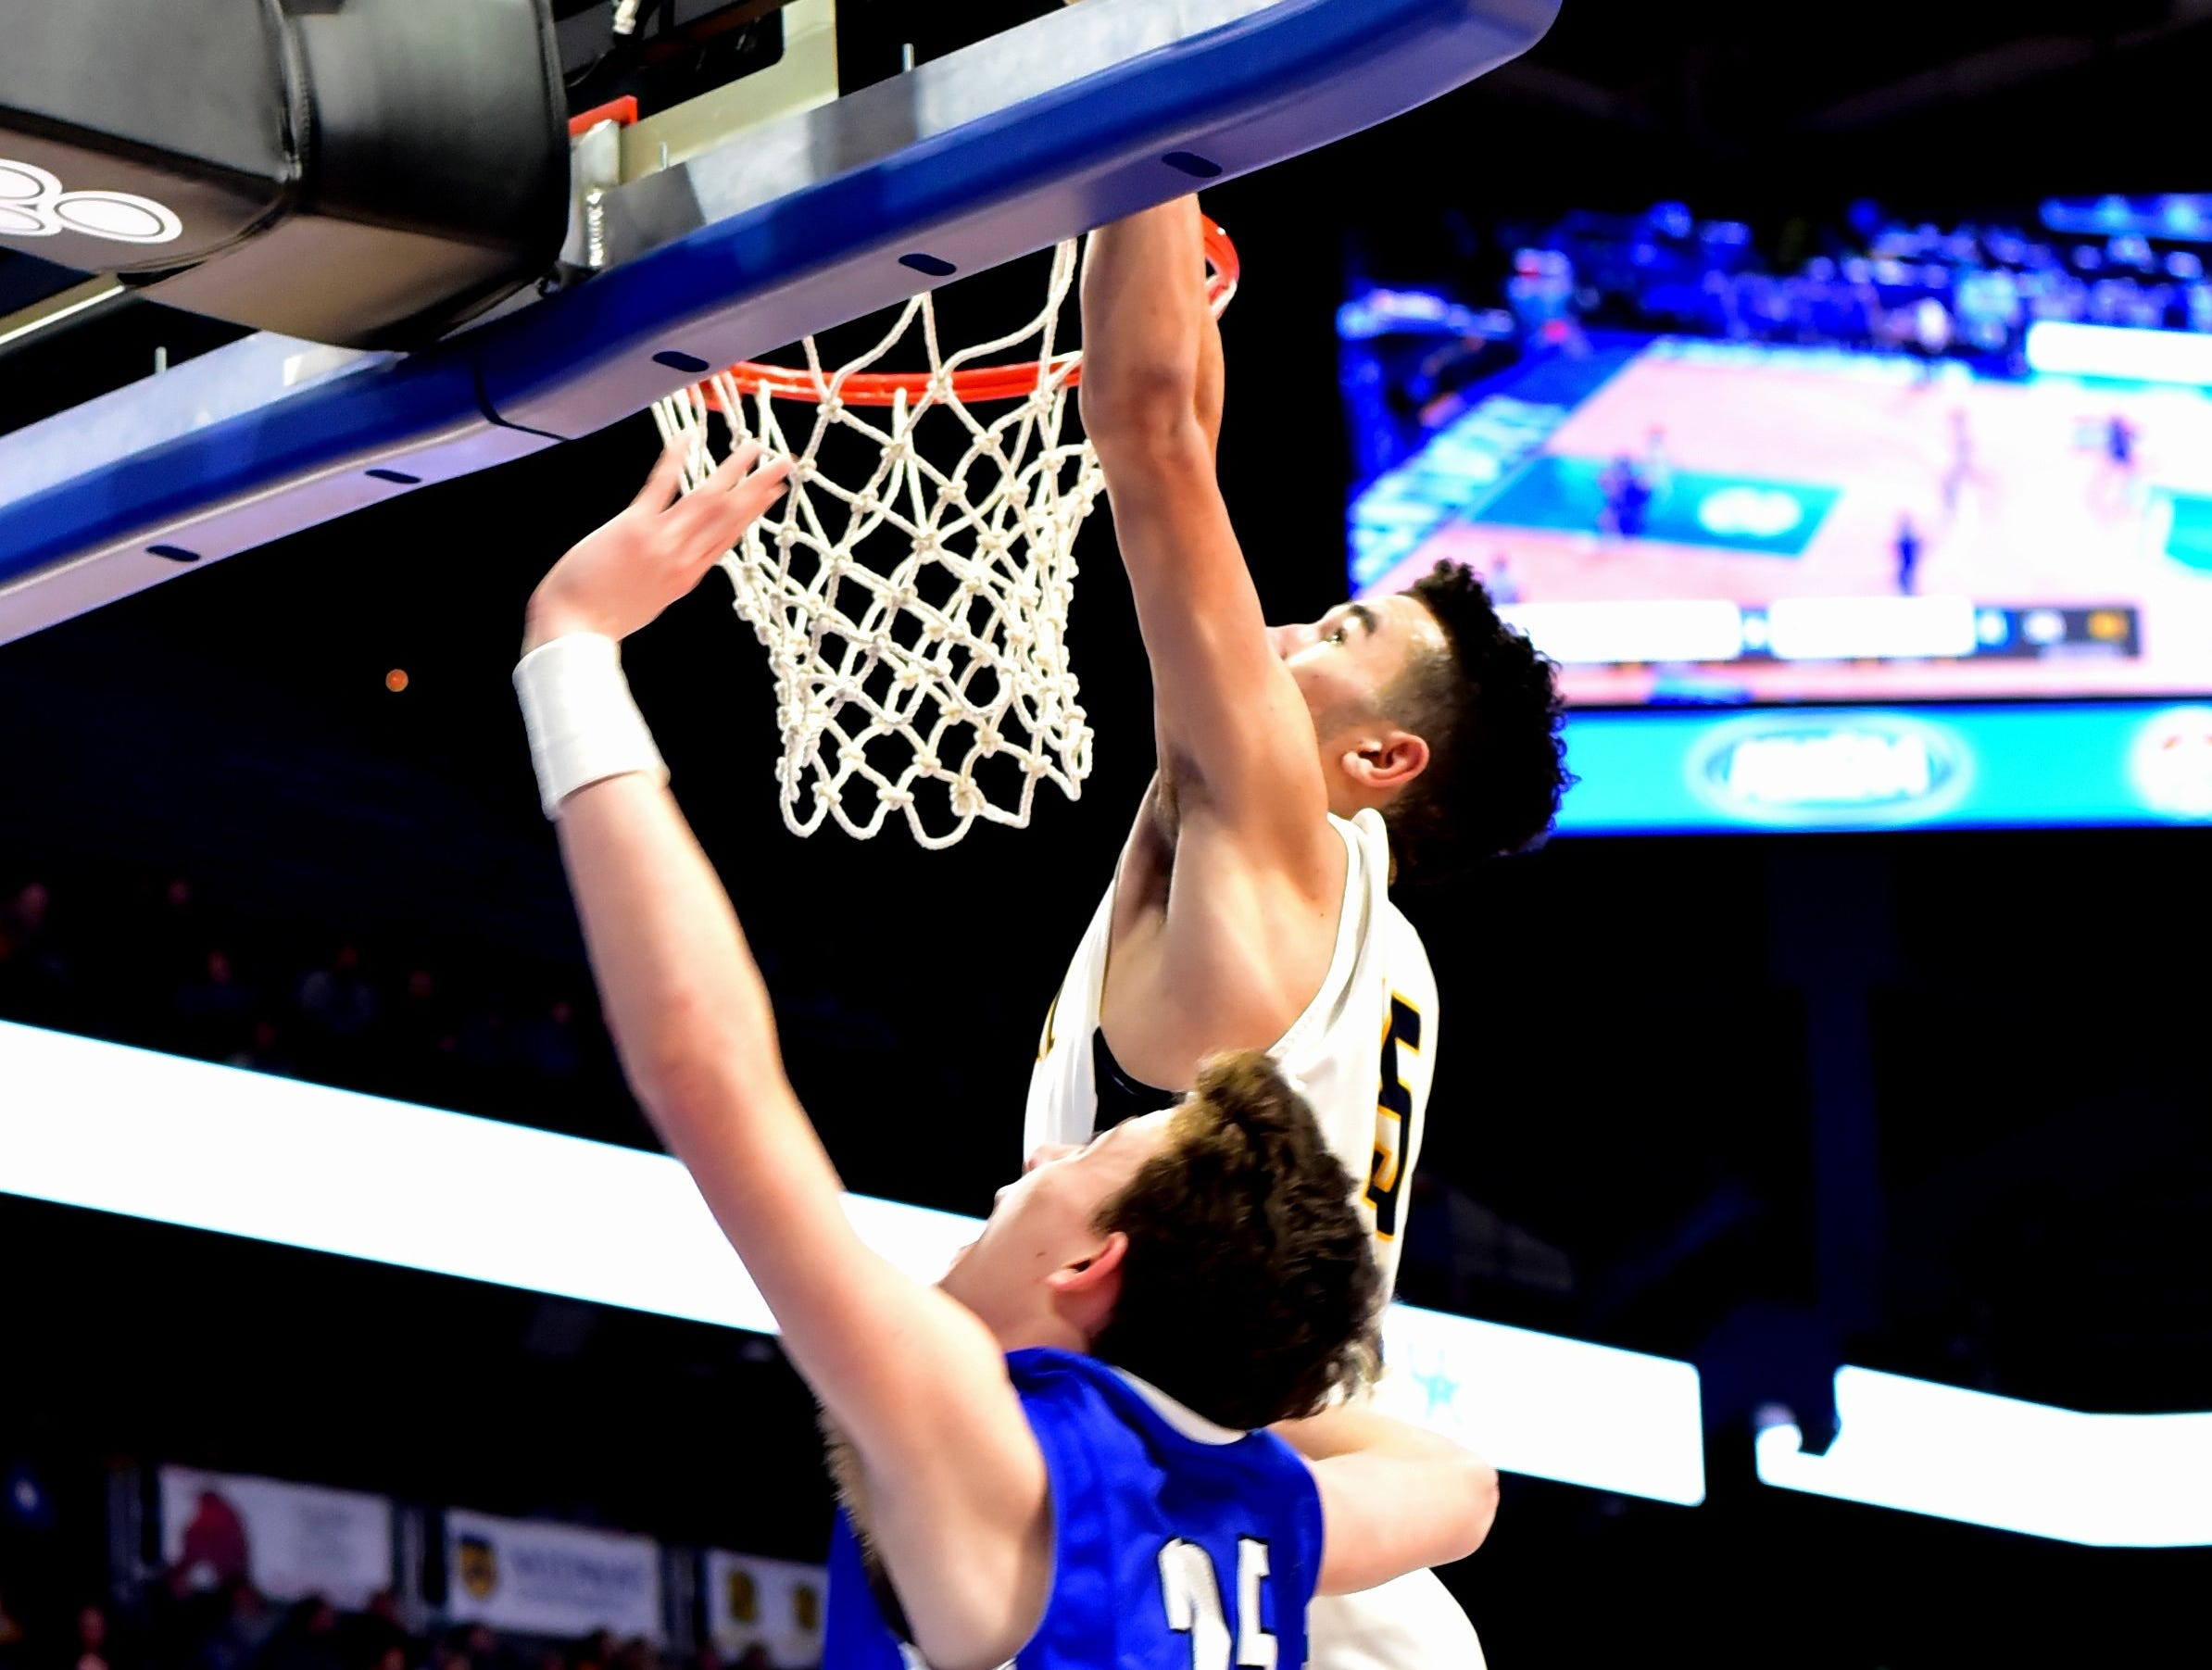 Kameron Pardee  (25) of Walton Verona slids in a left handed layup off of the backboard at the KHSAA Sweet 16 Tournament at Rupp Arena in Lexington, KY, March 6, 2019